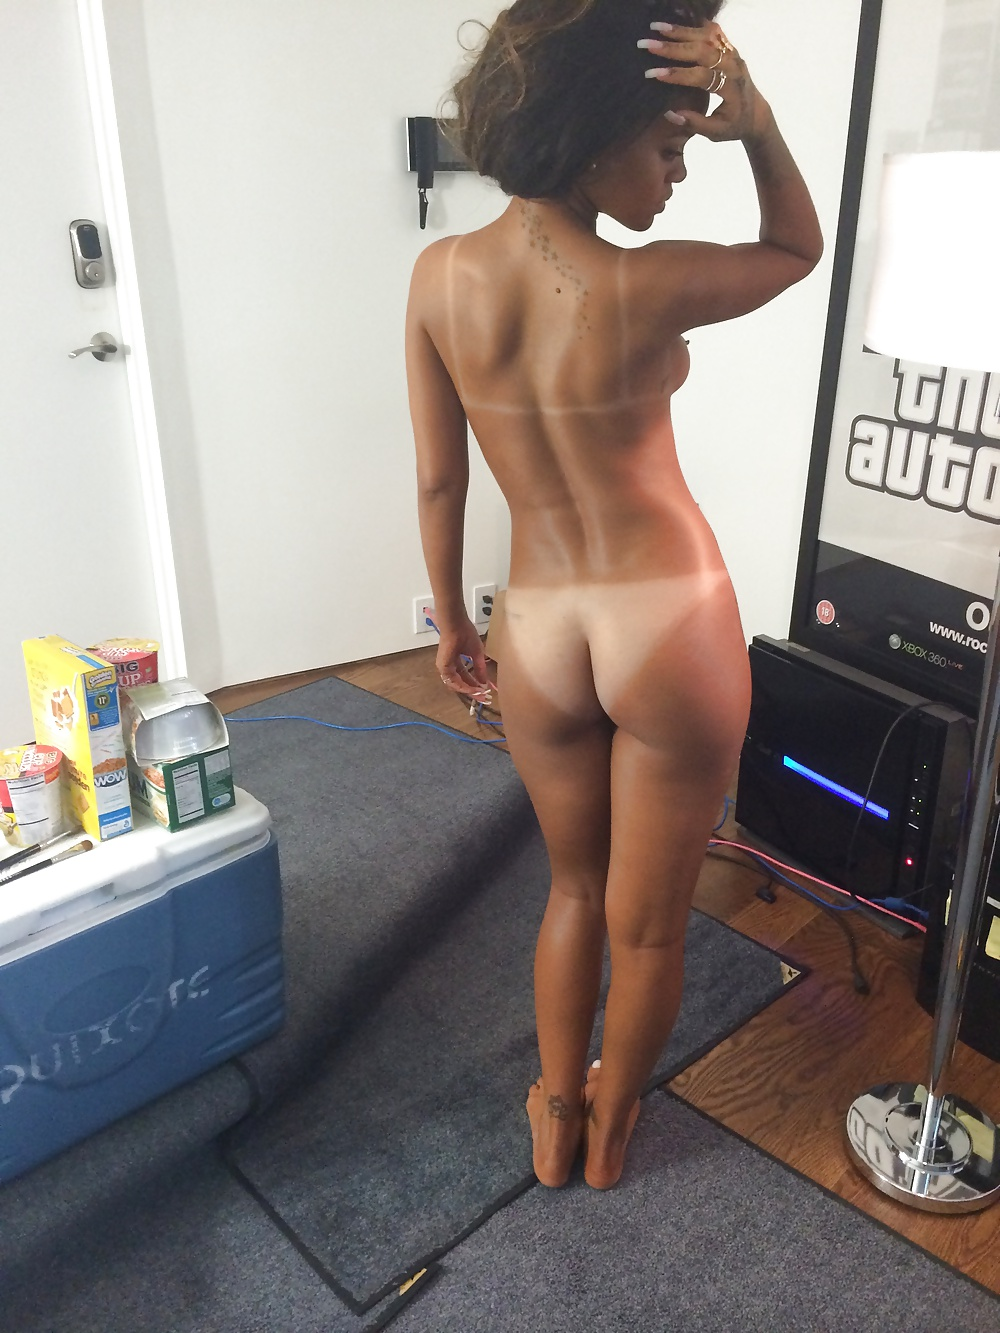 Rihanna Fantastic Boobs And Ass In A Sexy Topless Photoshoot